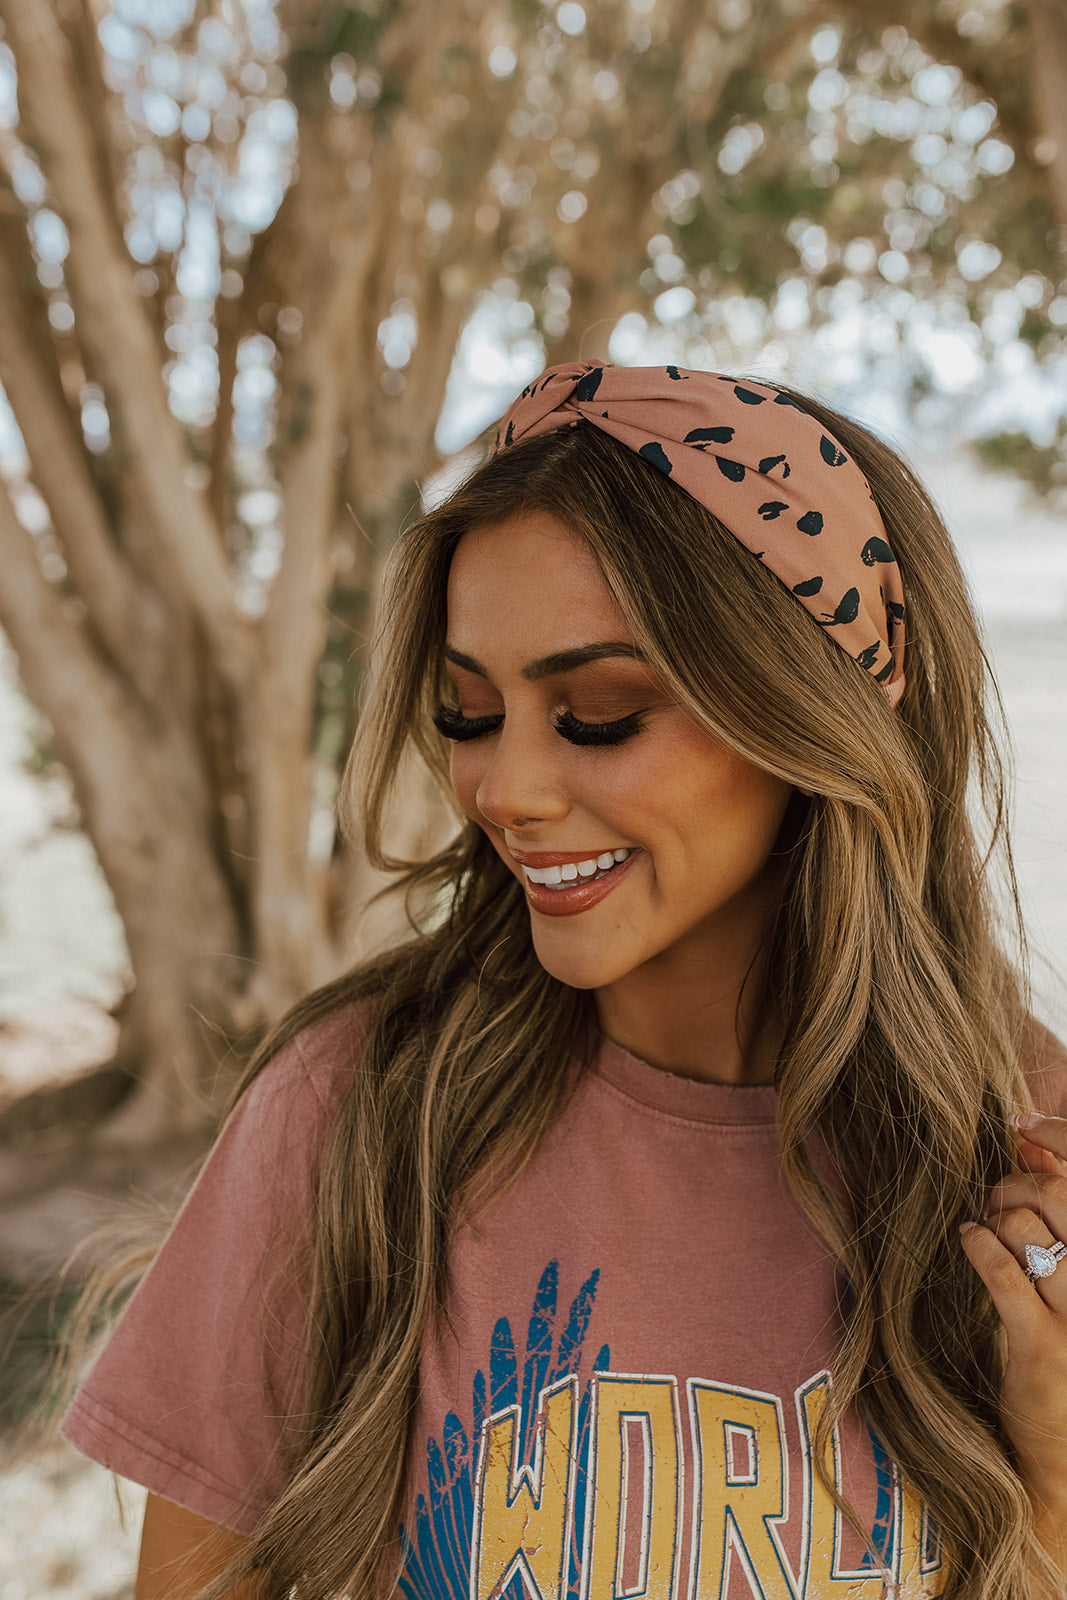 THE VAN GOGH TWISTED HEADBAND IN BROWN